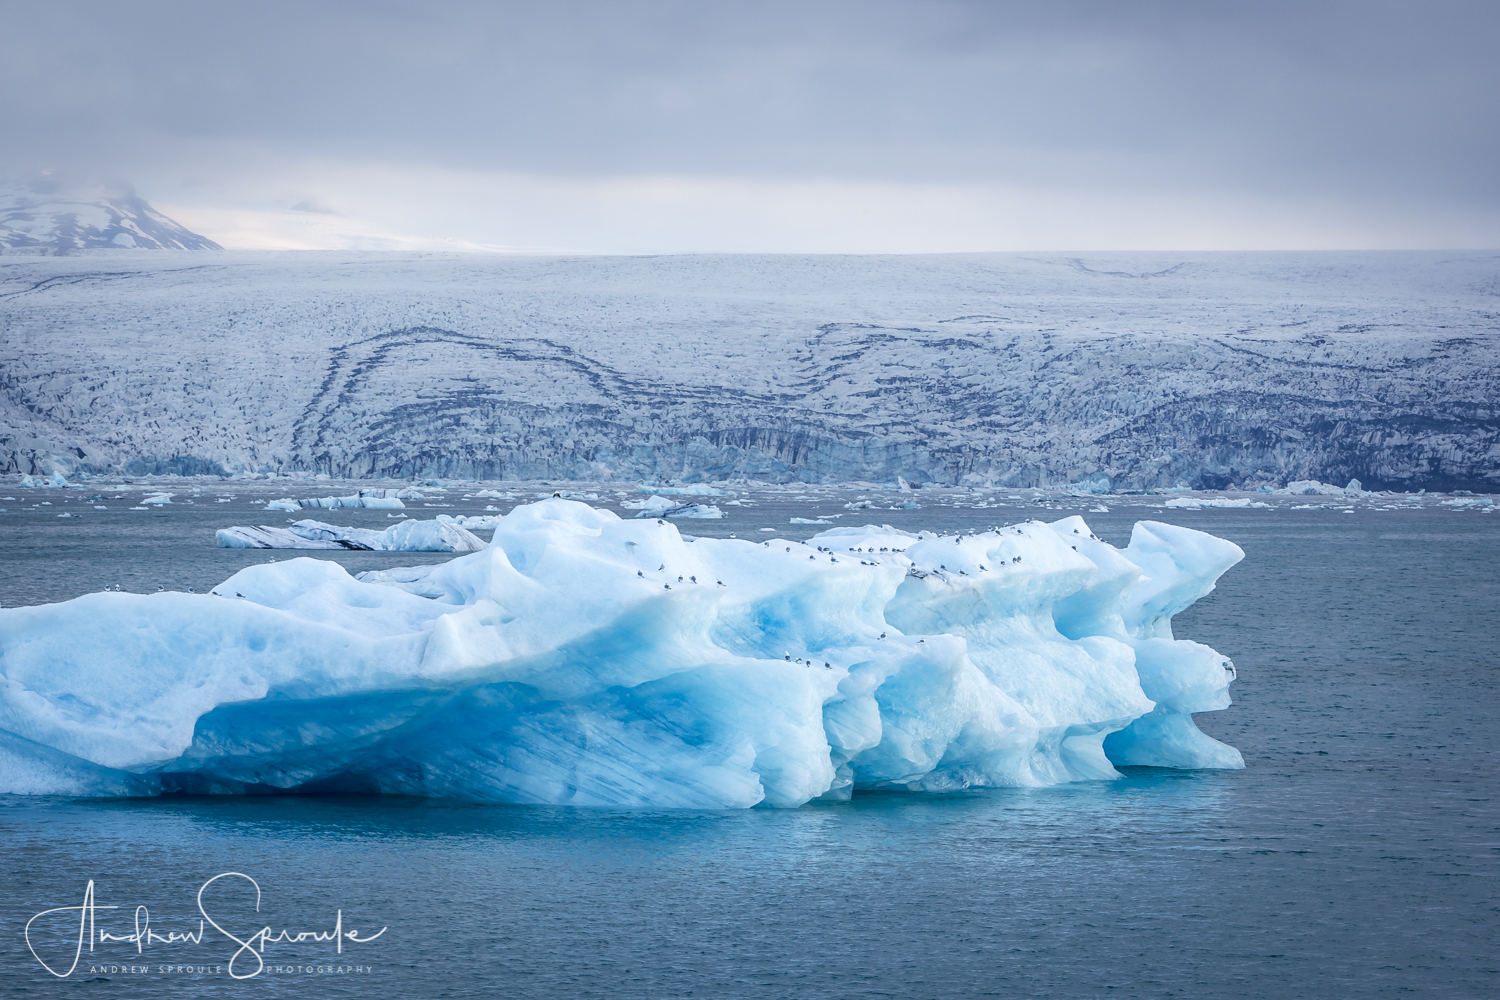 Andrew Sproule Photography | Landscapes | Iceland Gallery